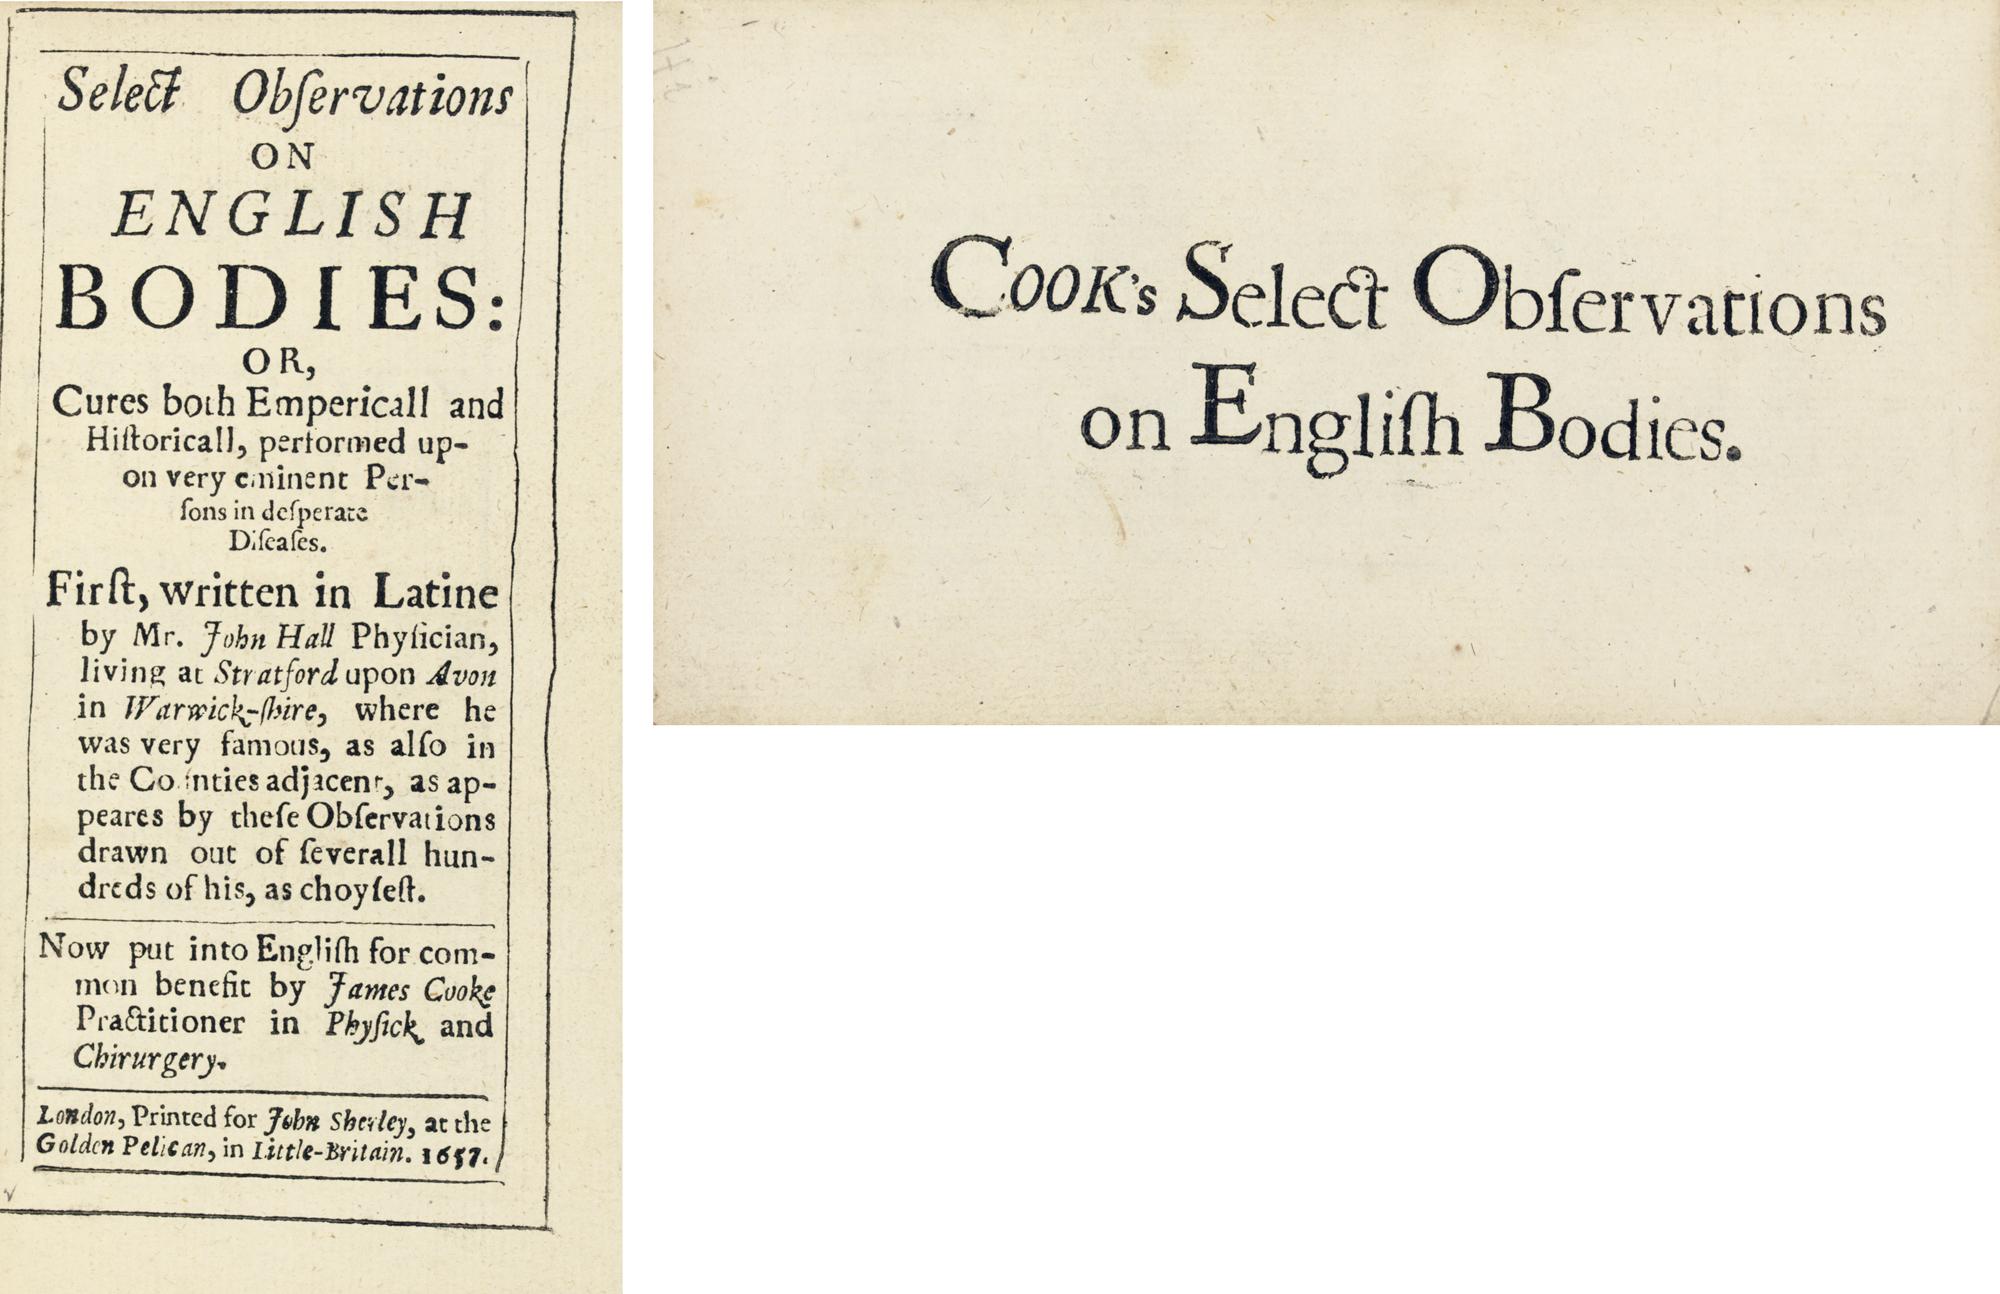 HALL, John (1575-1635).  Select Observations on English Bodies: or Cures ... performed upon very eminent persons in desperate diseases, translated by James Cooke. London: John Sherley, 1657. 12° (151 x 82mm). Vertical half-title (lacking the final 2 blanks, upper outer corner of last few leaves with small repairs, just affecting border and one number of last 2 leaves, light spotting, occasional small light stains or light marginal browning or soiling). Modern crimson morocco by Riviere, triple fillet gilt border on sides, spine ruled, lettered and elaborately tooled in gilt, inner dentelles, partly uncut. Provenance: a few old corrections (in text).